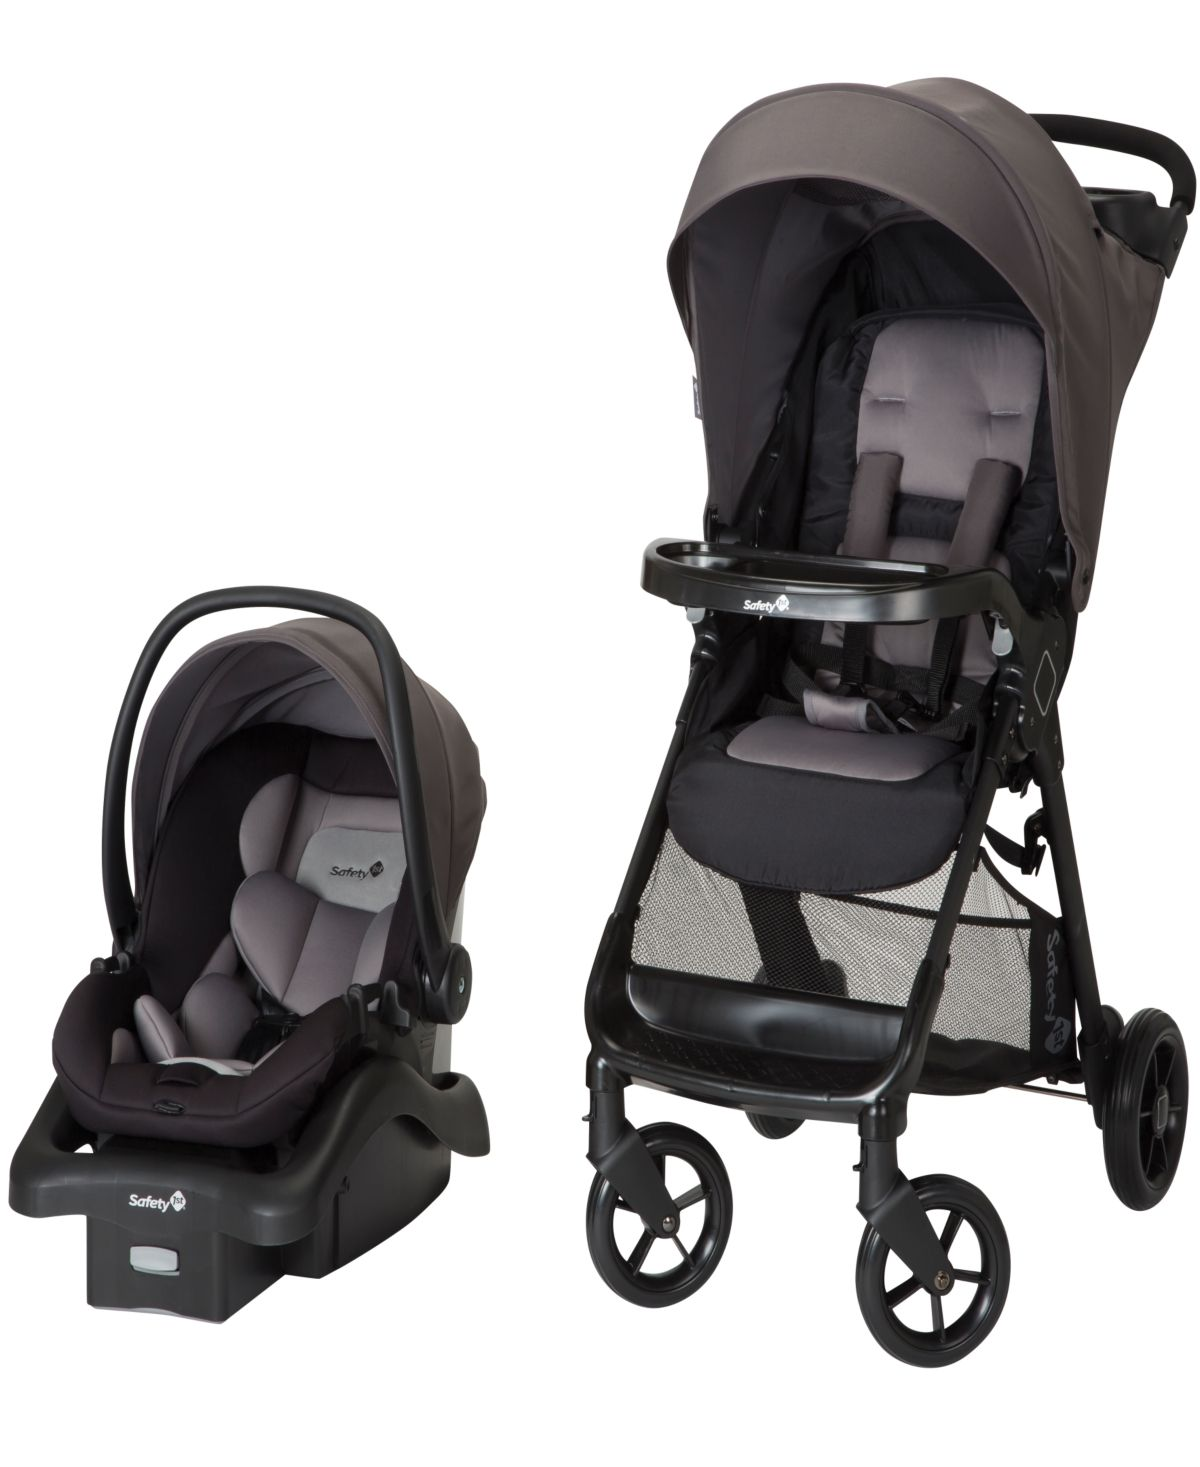 Cosco safety 1st smooth ride travel system reviews